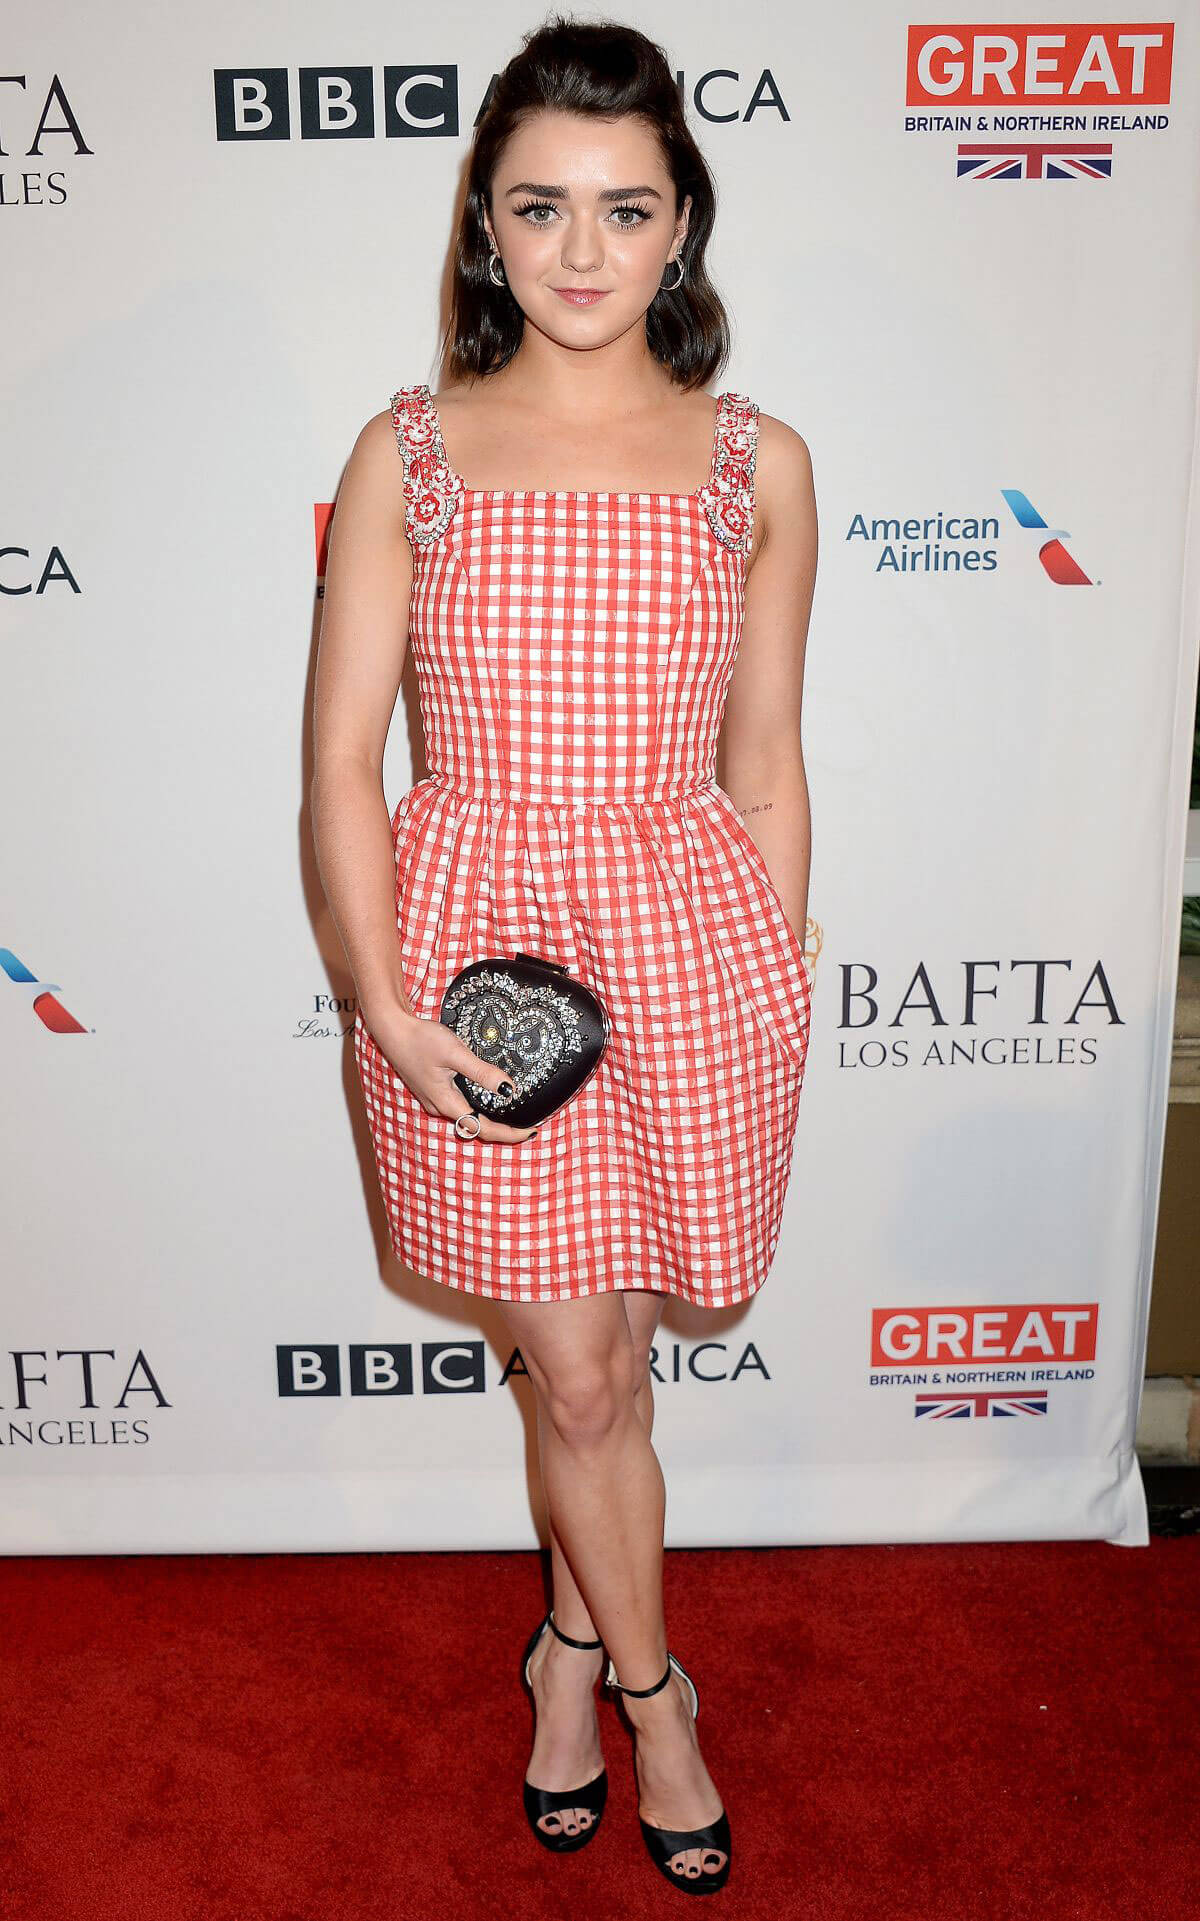 Maisie Williams at Bafta Tea Party in Los Angeles